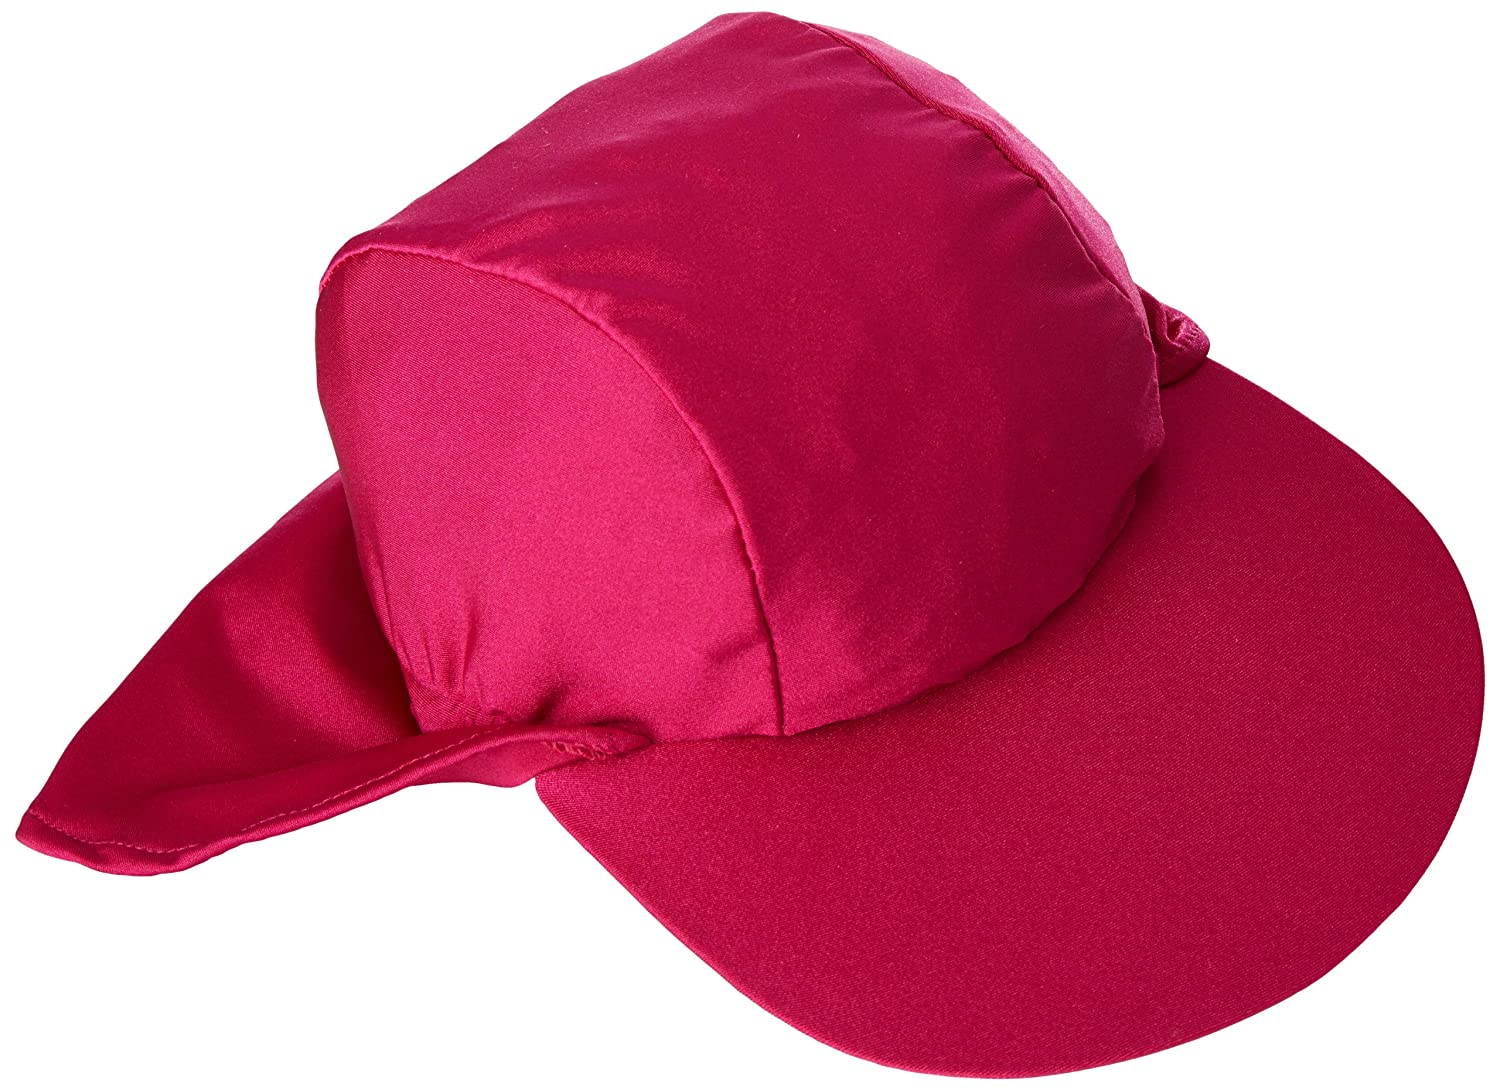 Zunblock UV-Hat with Neck Protection, Pink, Small 5010541